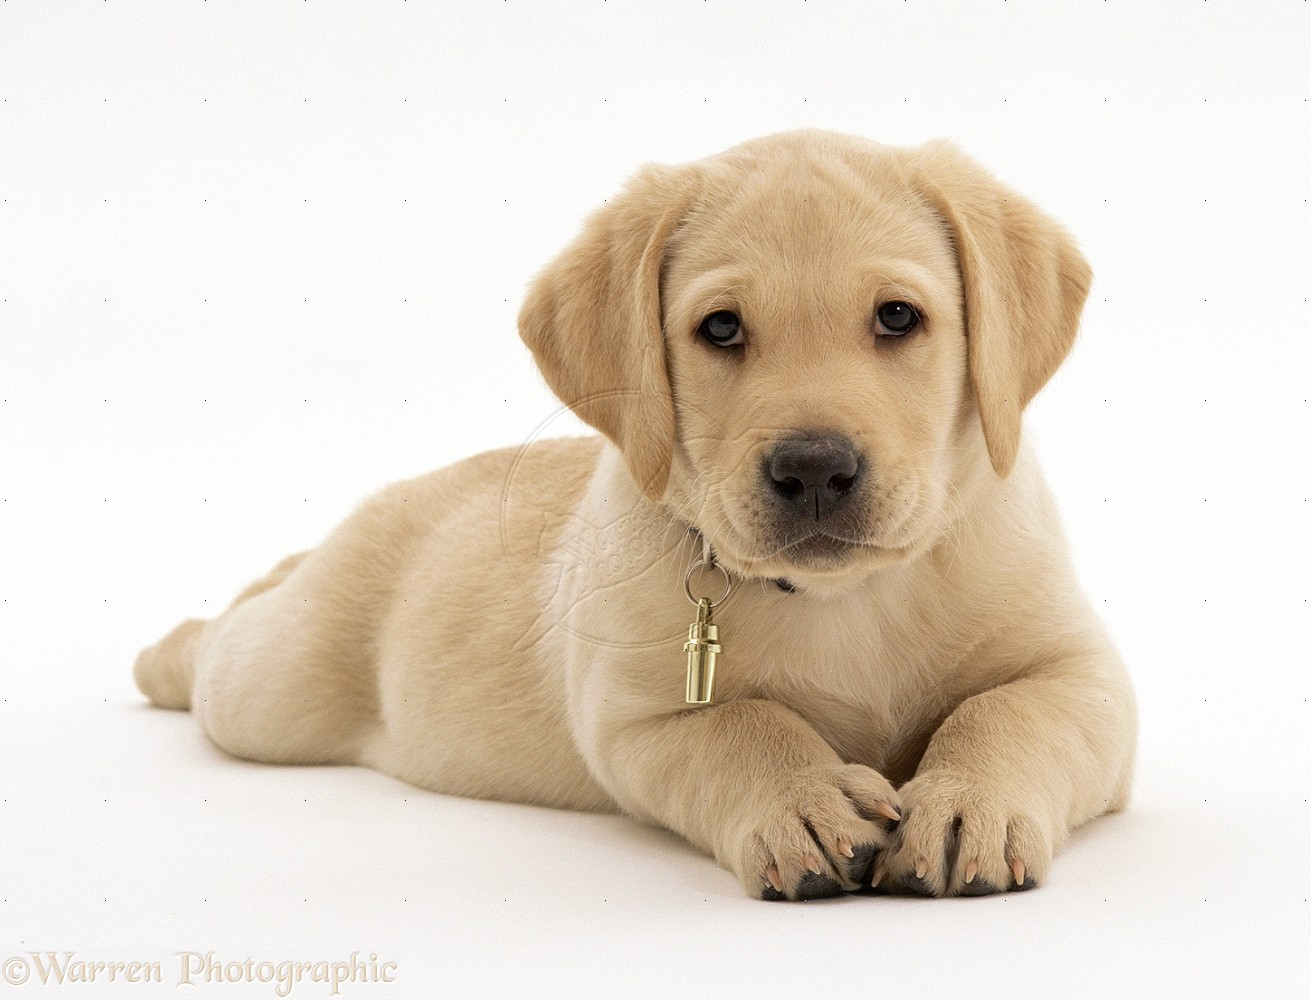 Yellow Labrador Retriever Puppy White Background   1311x1000 iWallHD 1311x1000